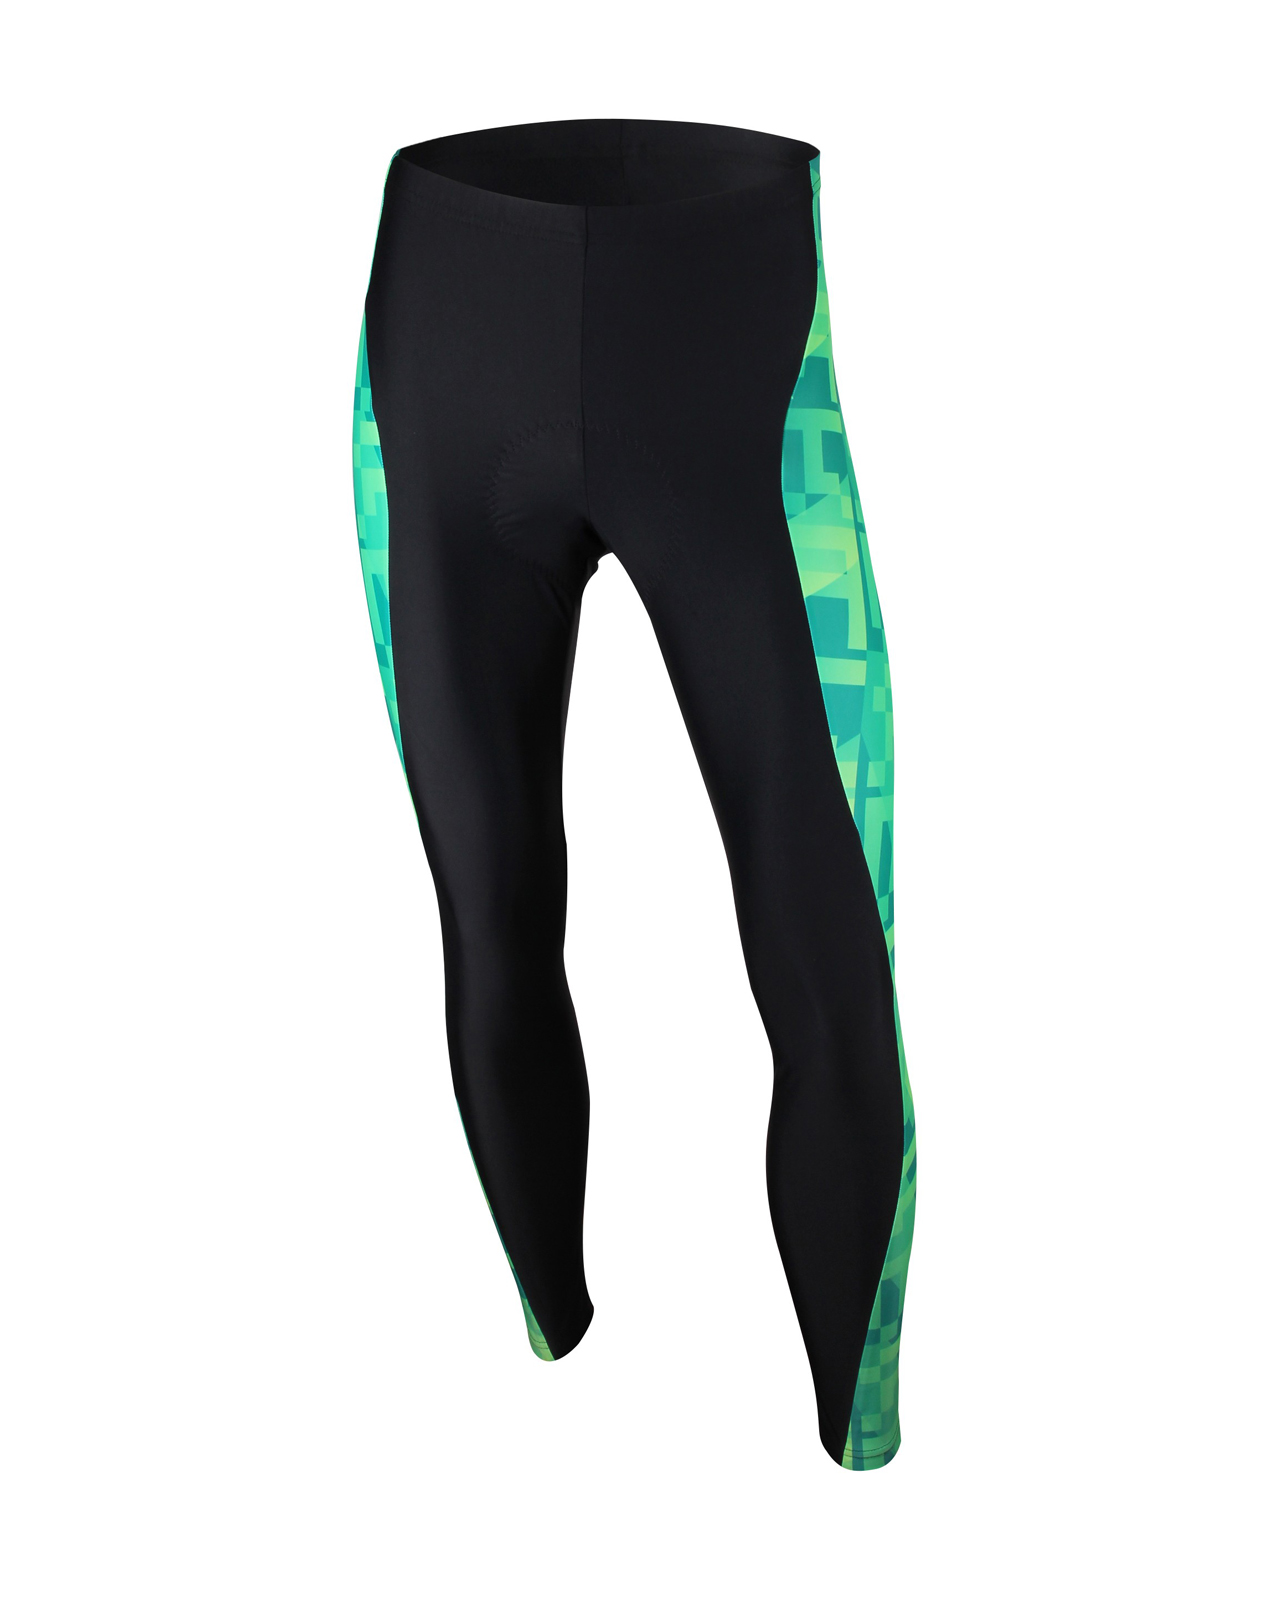 SCUDO Cycling Tights